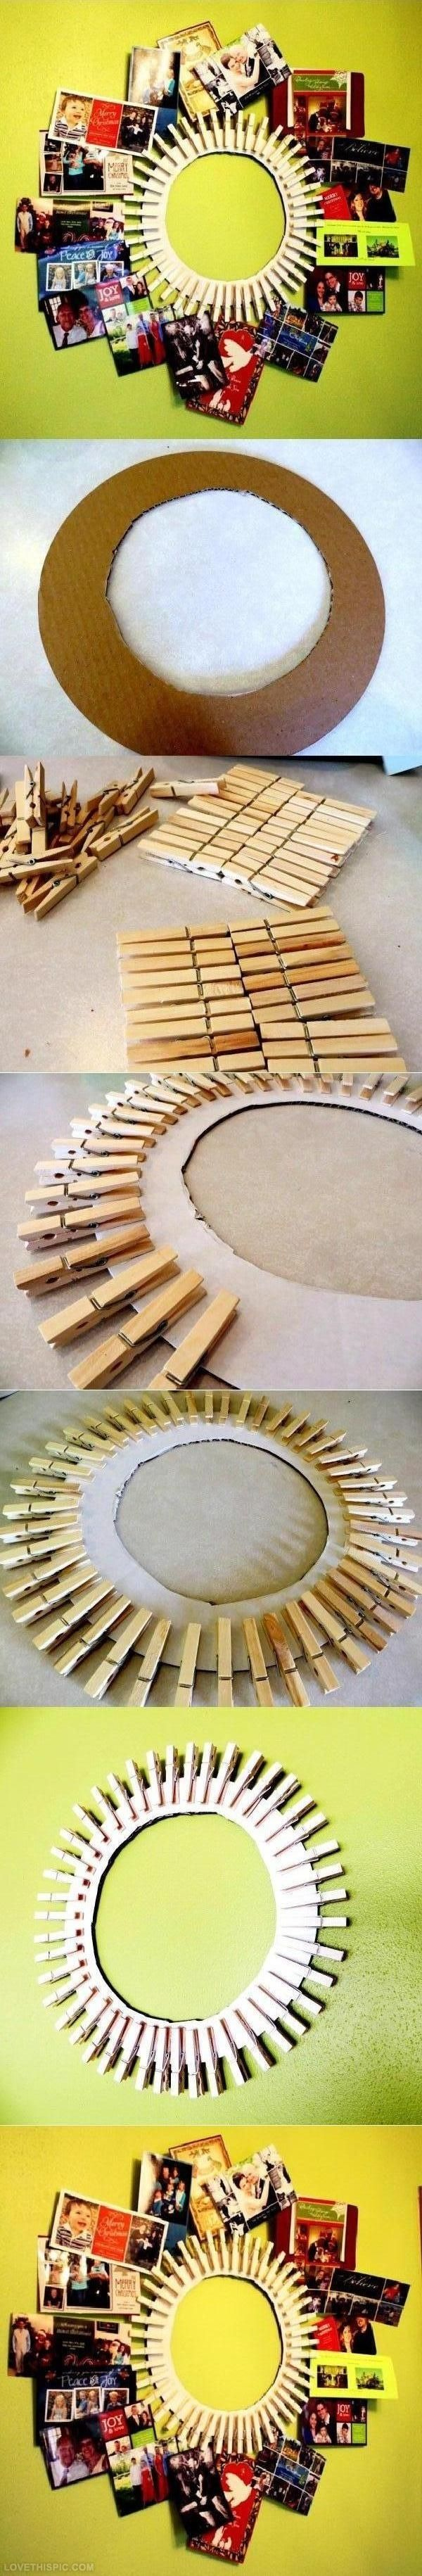 Christmas card wreath - except fancy up the clothes pins and cardboard ring a little, sheesh.